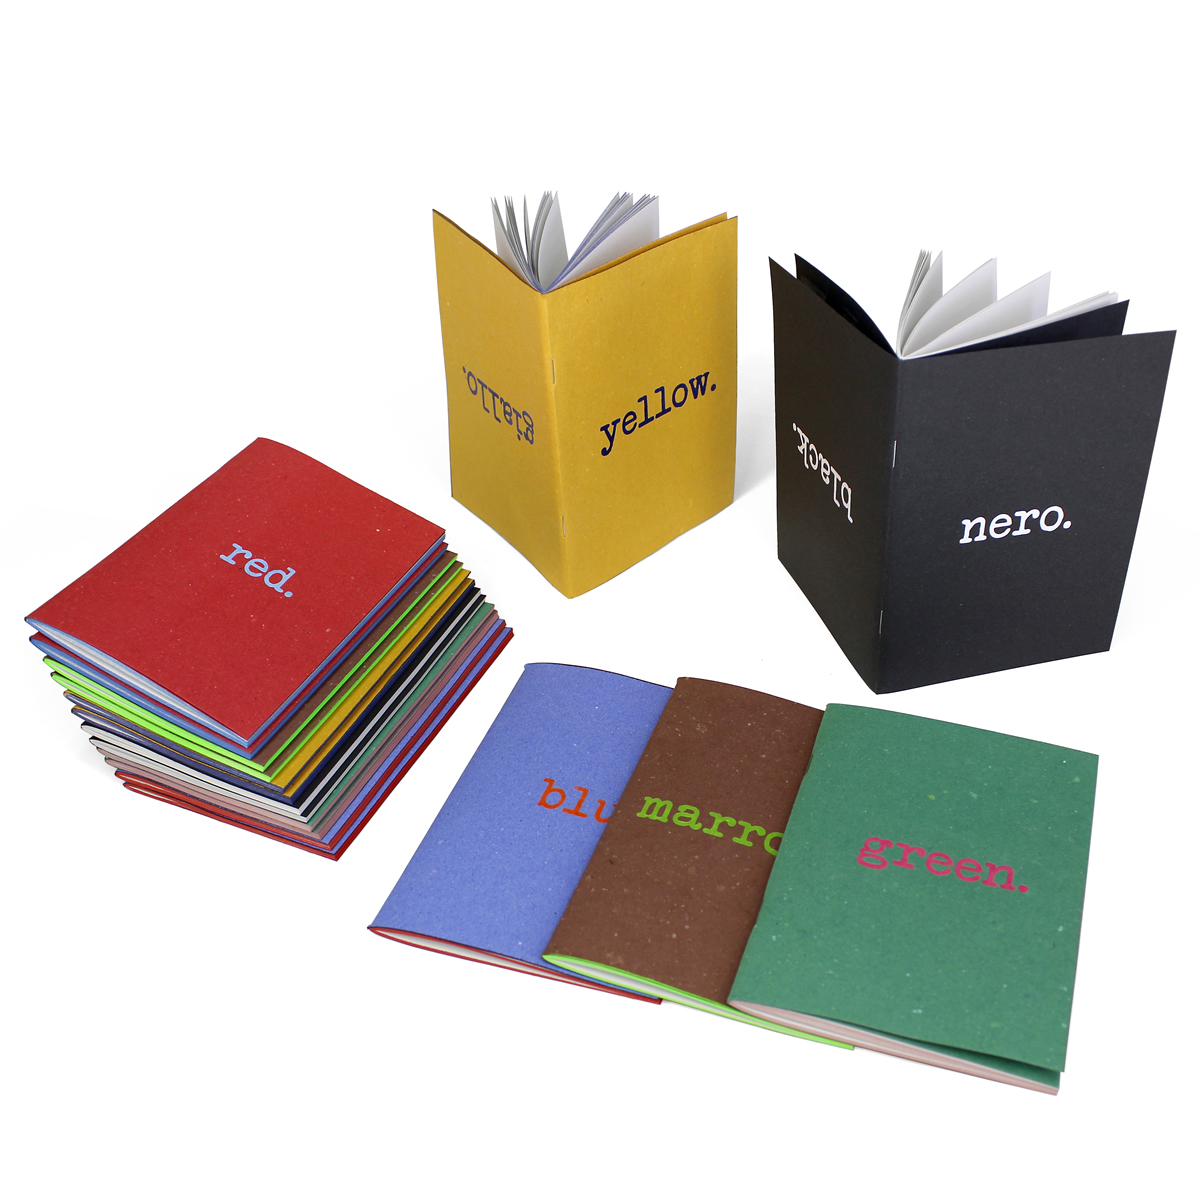 Kroma - recycled paper notebook by Arbos